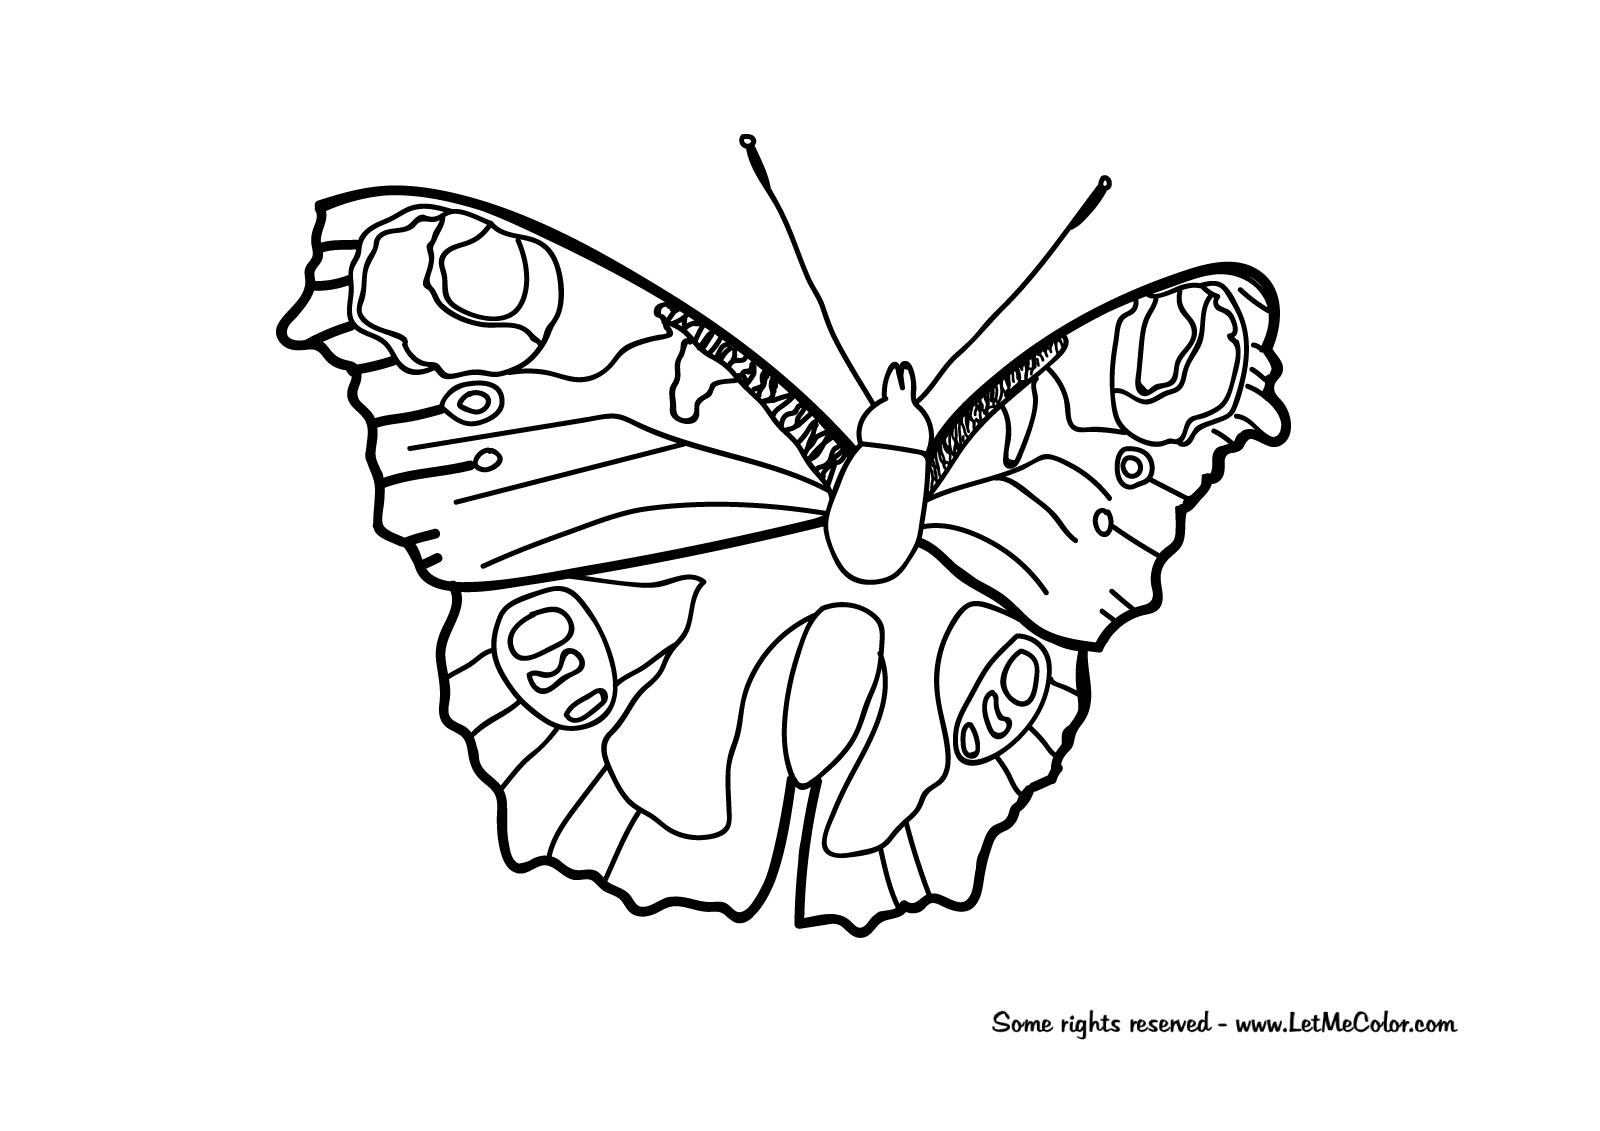 1600x1131 Letmecolor Page Free Printable Coloring Pages Made